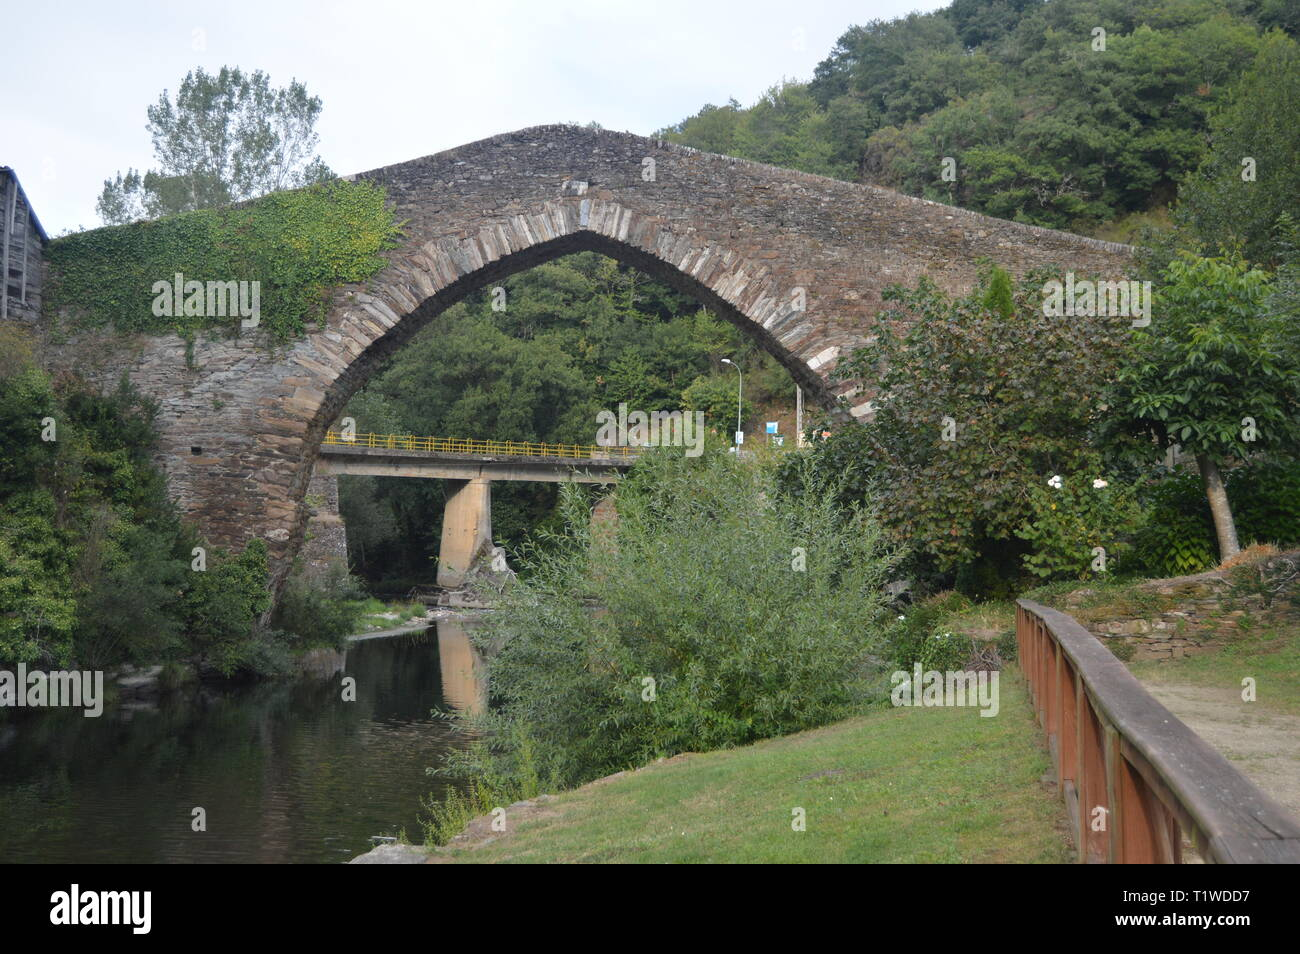 Fotos De Navia wonderful medieval style bridge crossing the suarna river on